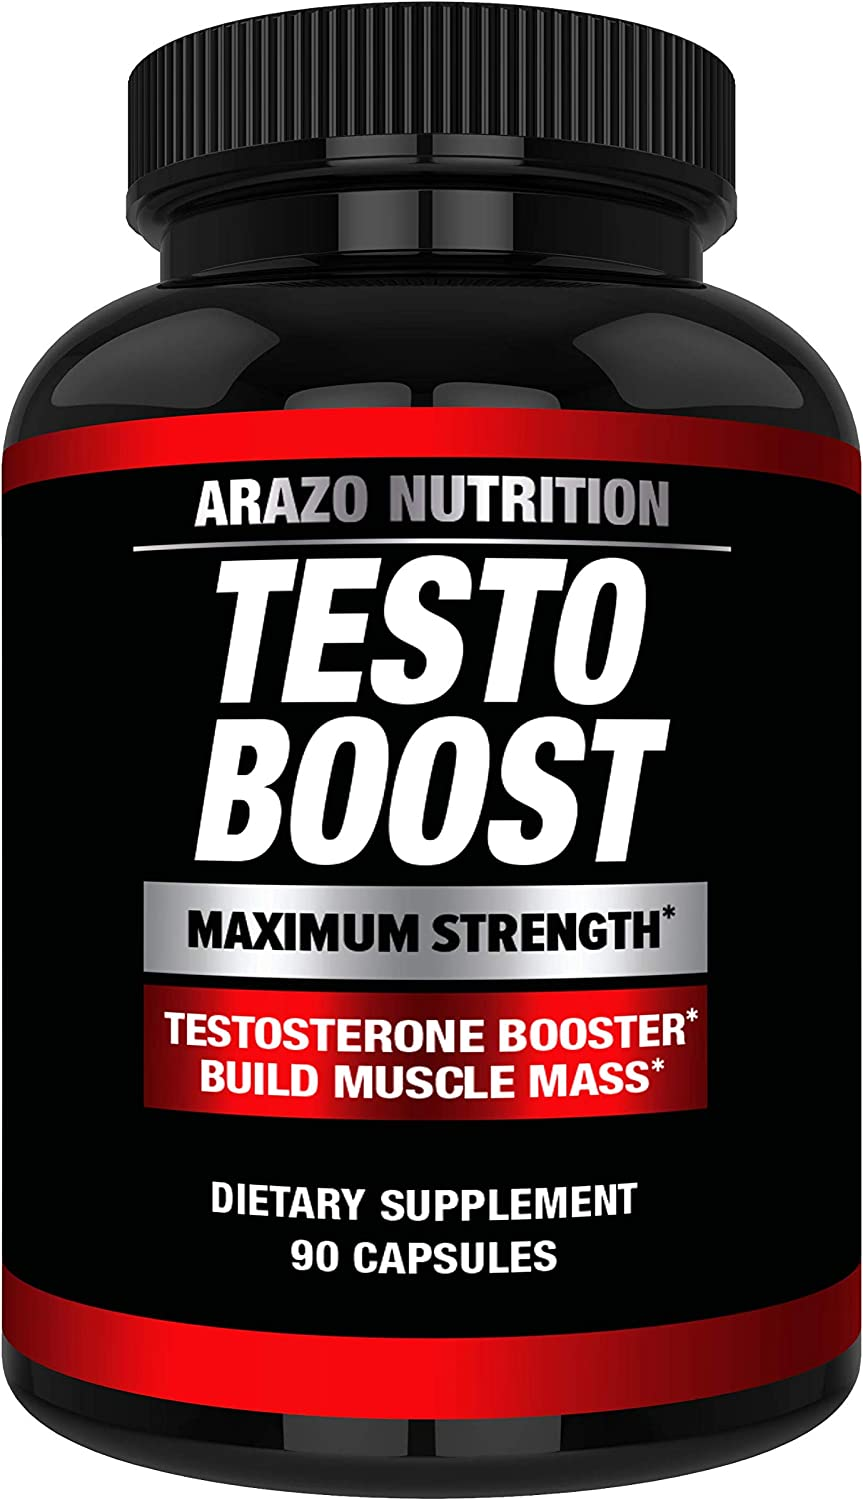 TESTOBOOST Test Booster Supplement - Potent & Natural Herbal Pills - Boost Muscle Growth - Tribulus, Horny Goat Weed, Hawthorn, Zinc, Minerals - Arazo Nutrition USA